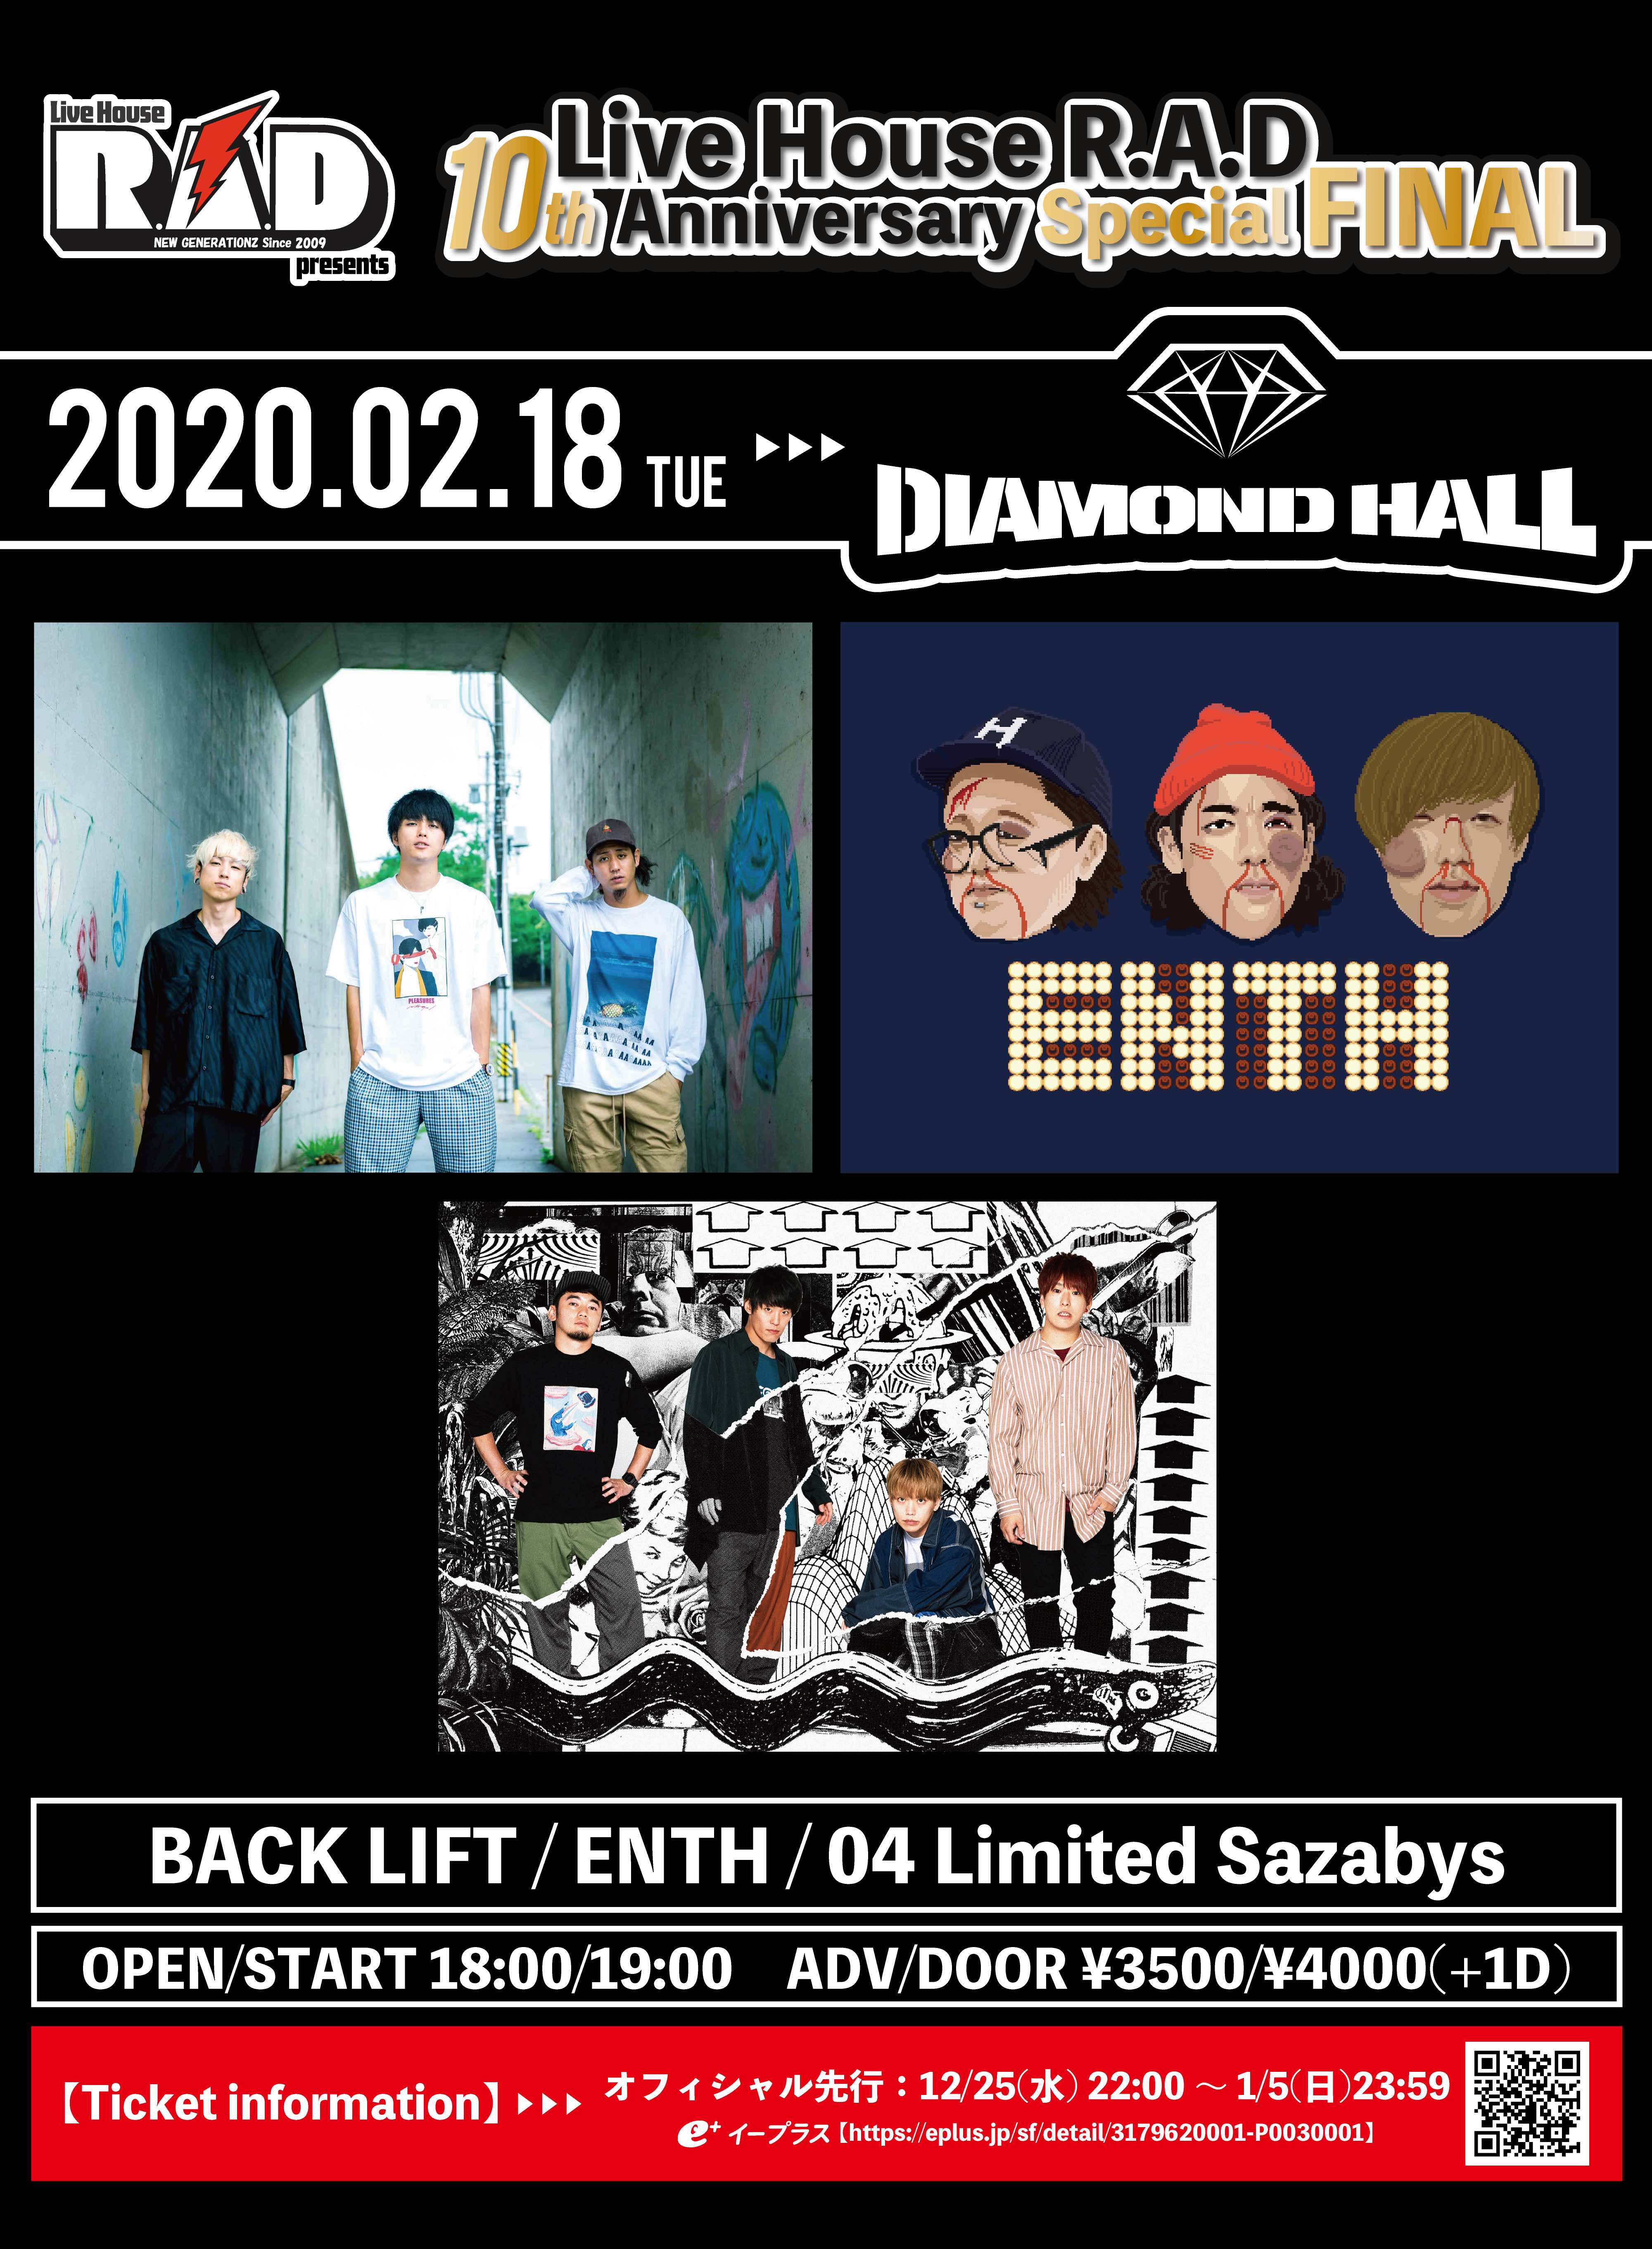 【愛知】Live House R.A.D 10th Anniversary Special Final (名古屋Diamond Hall)